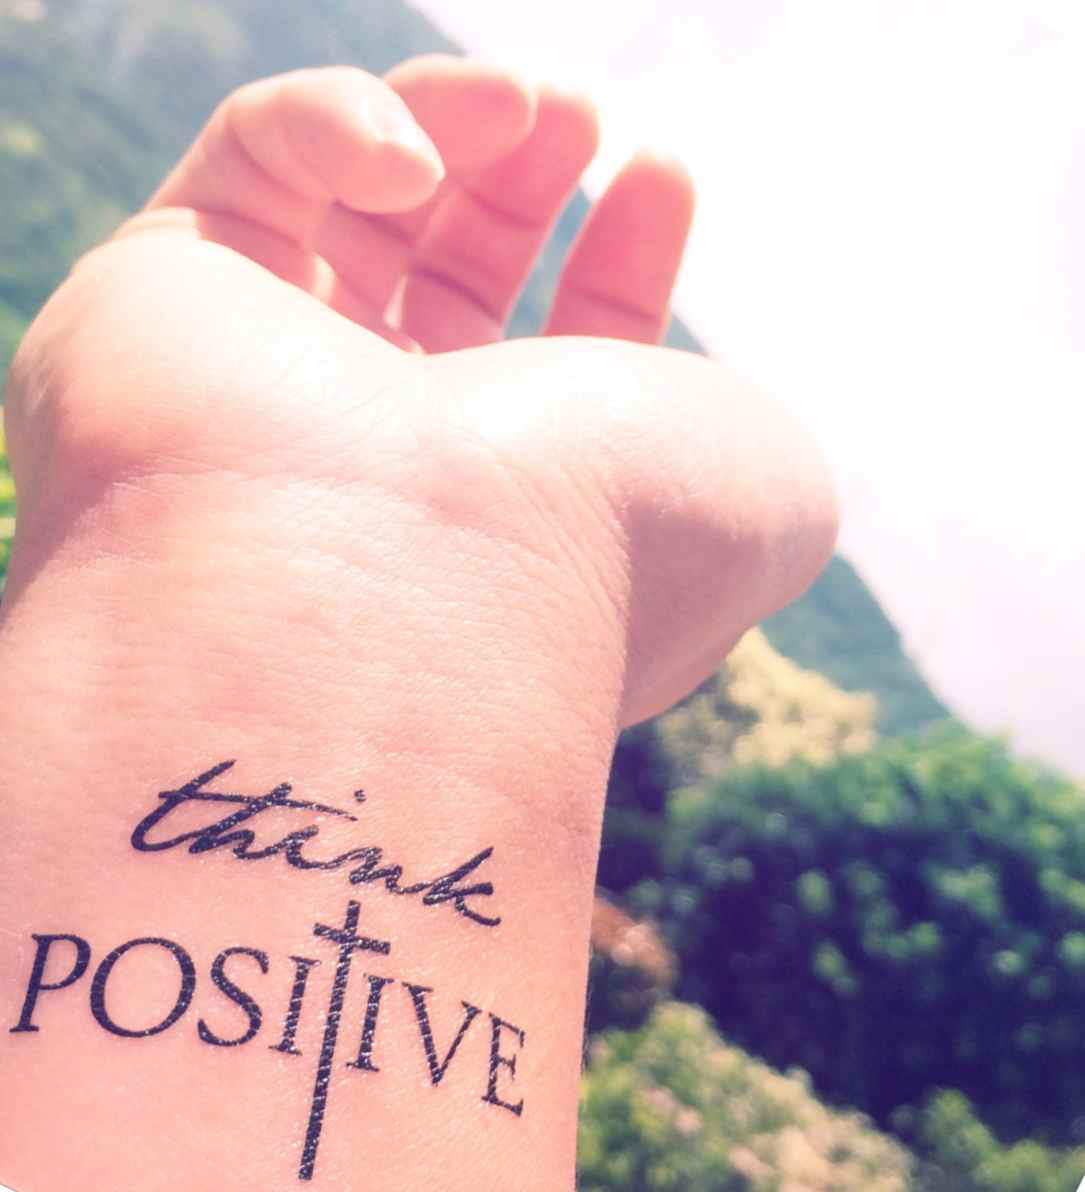 30 Positive Tattoo Ideas For Women That Are Very: Tattoo Designs Ideas For Man And